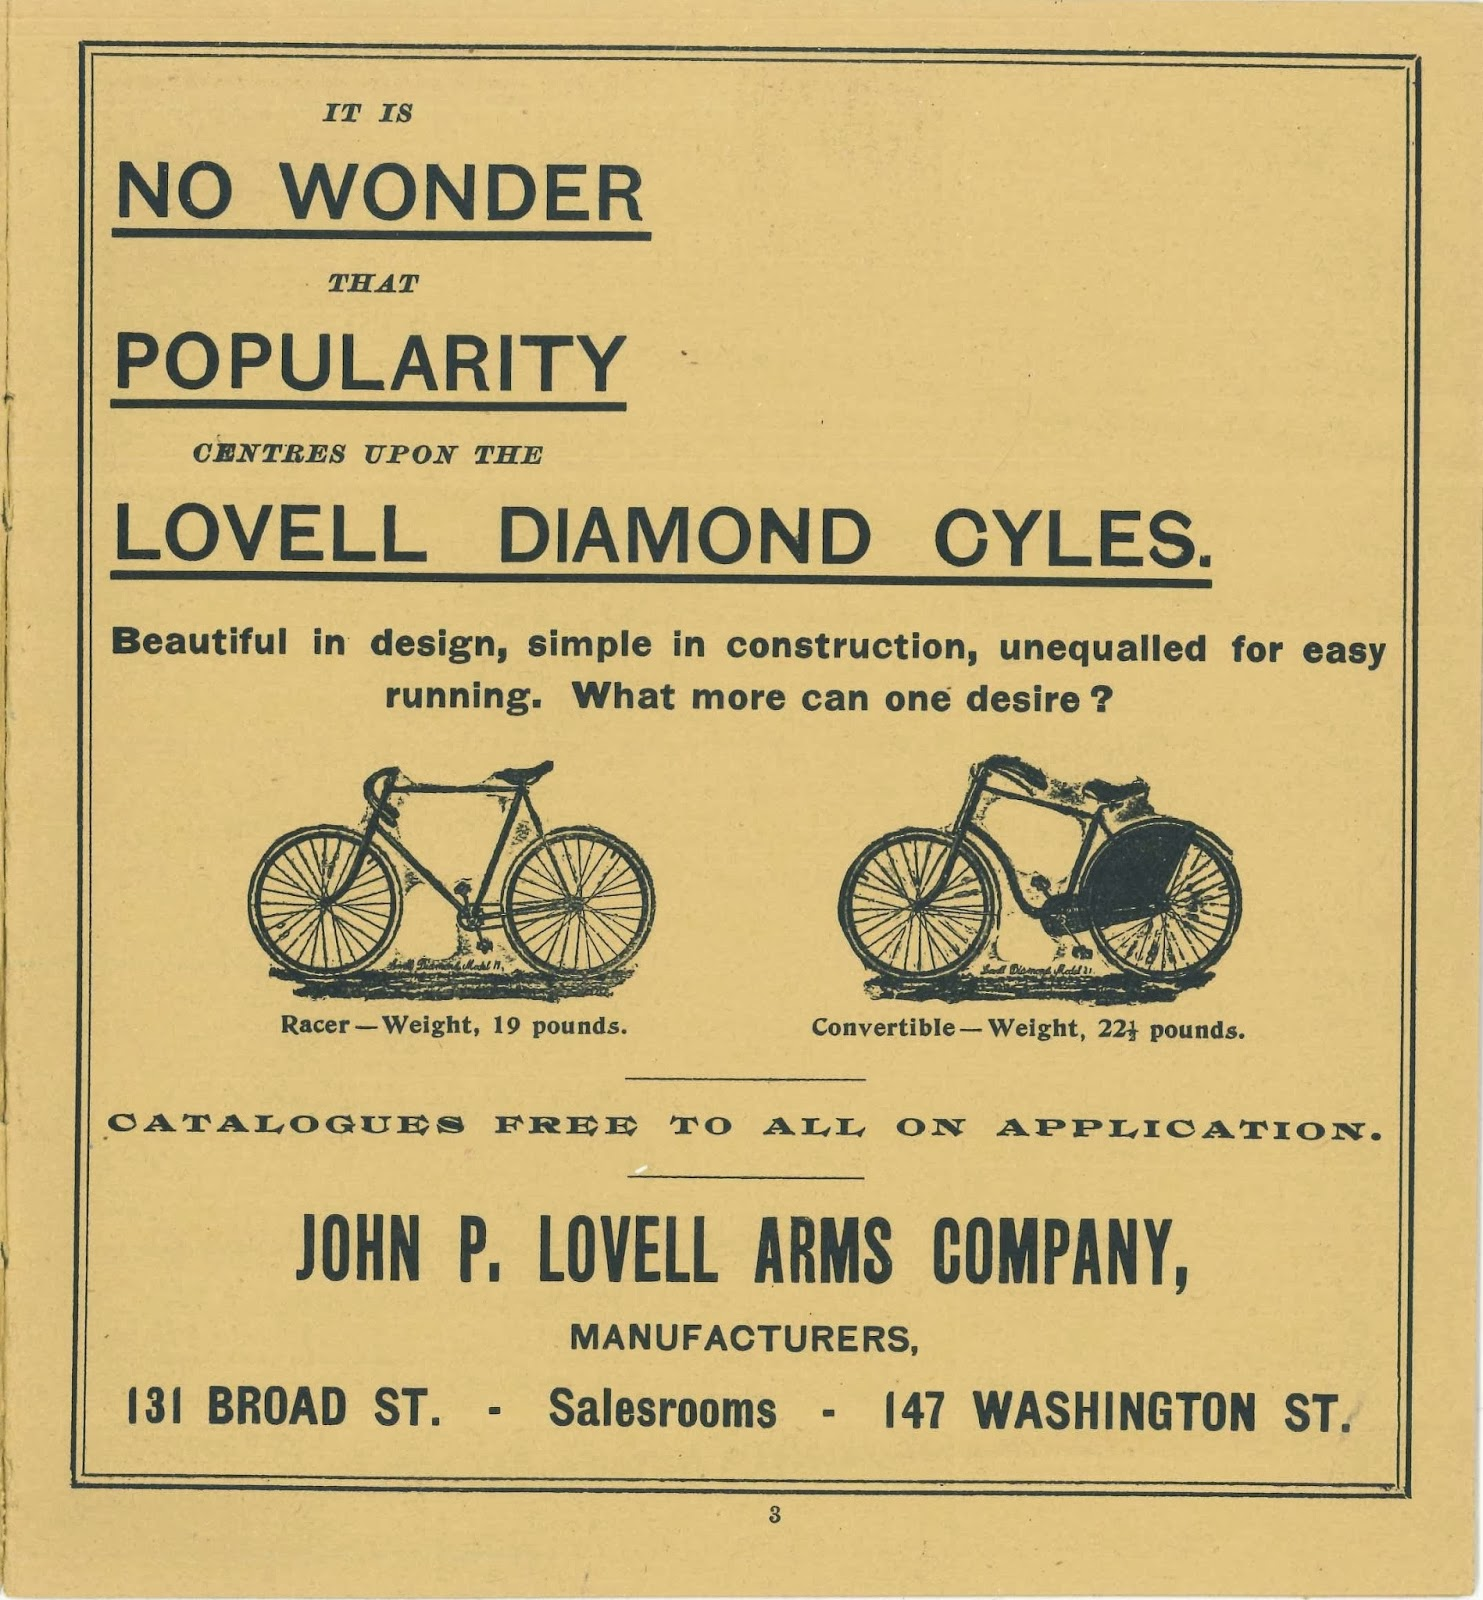 A full-page advertisement for bicycles from the program.